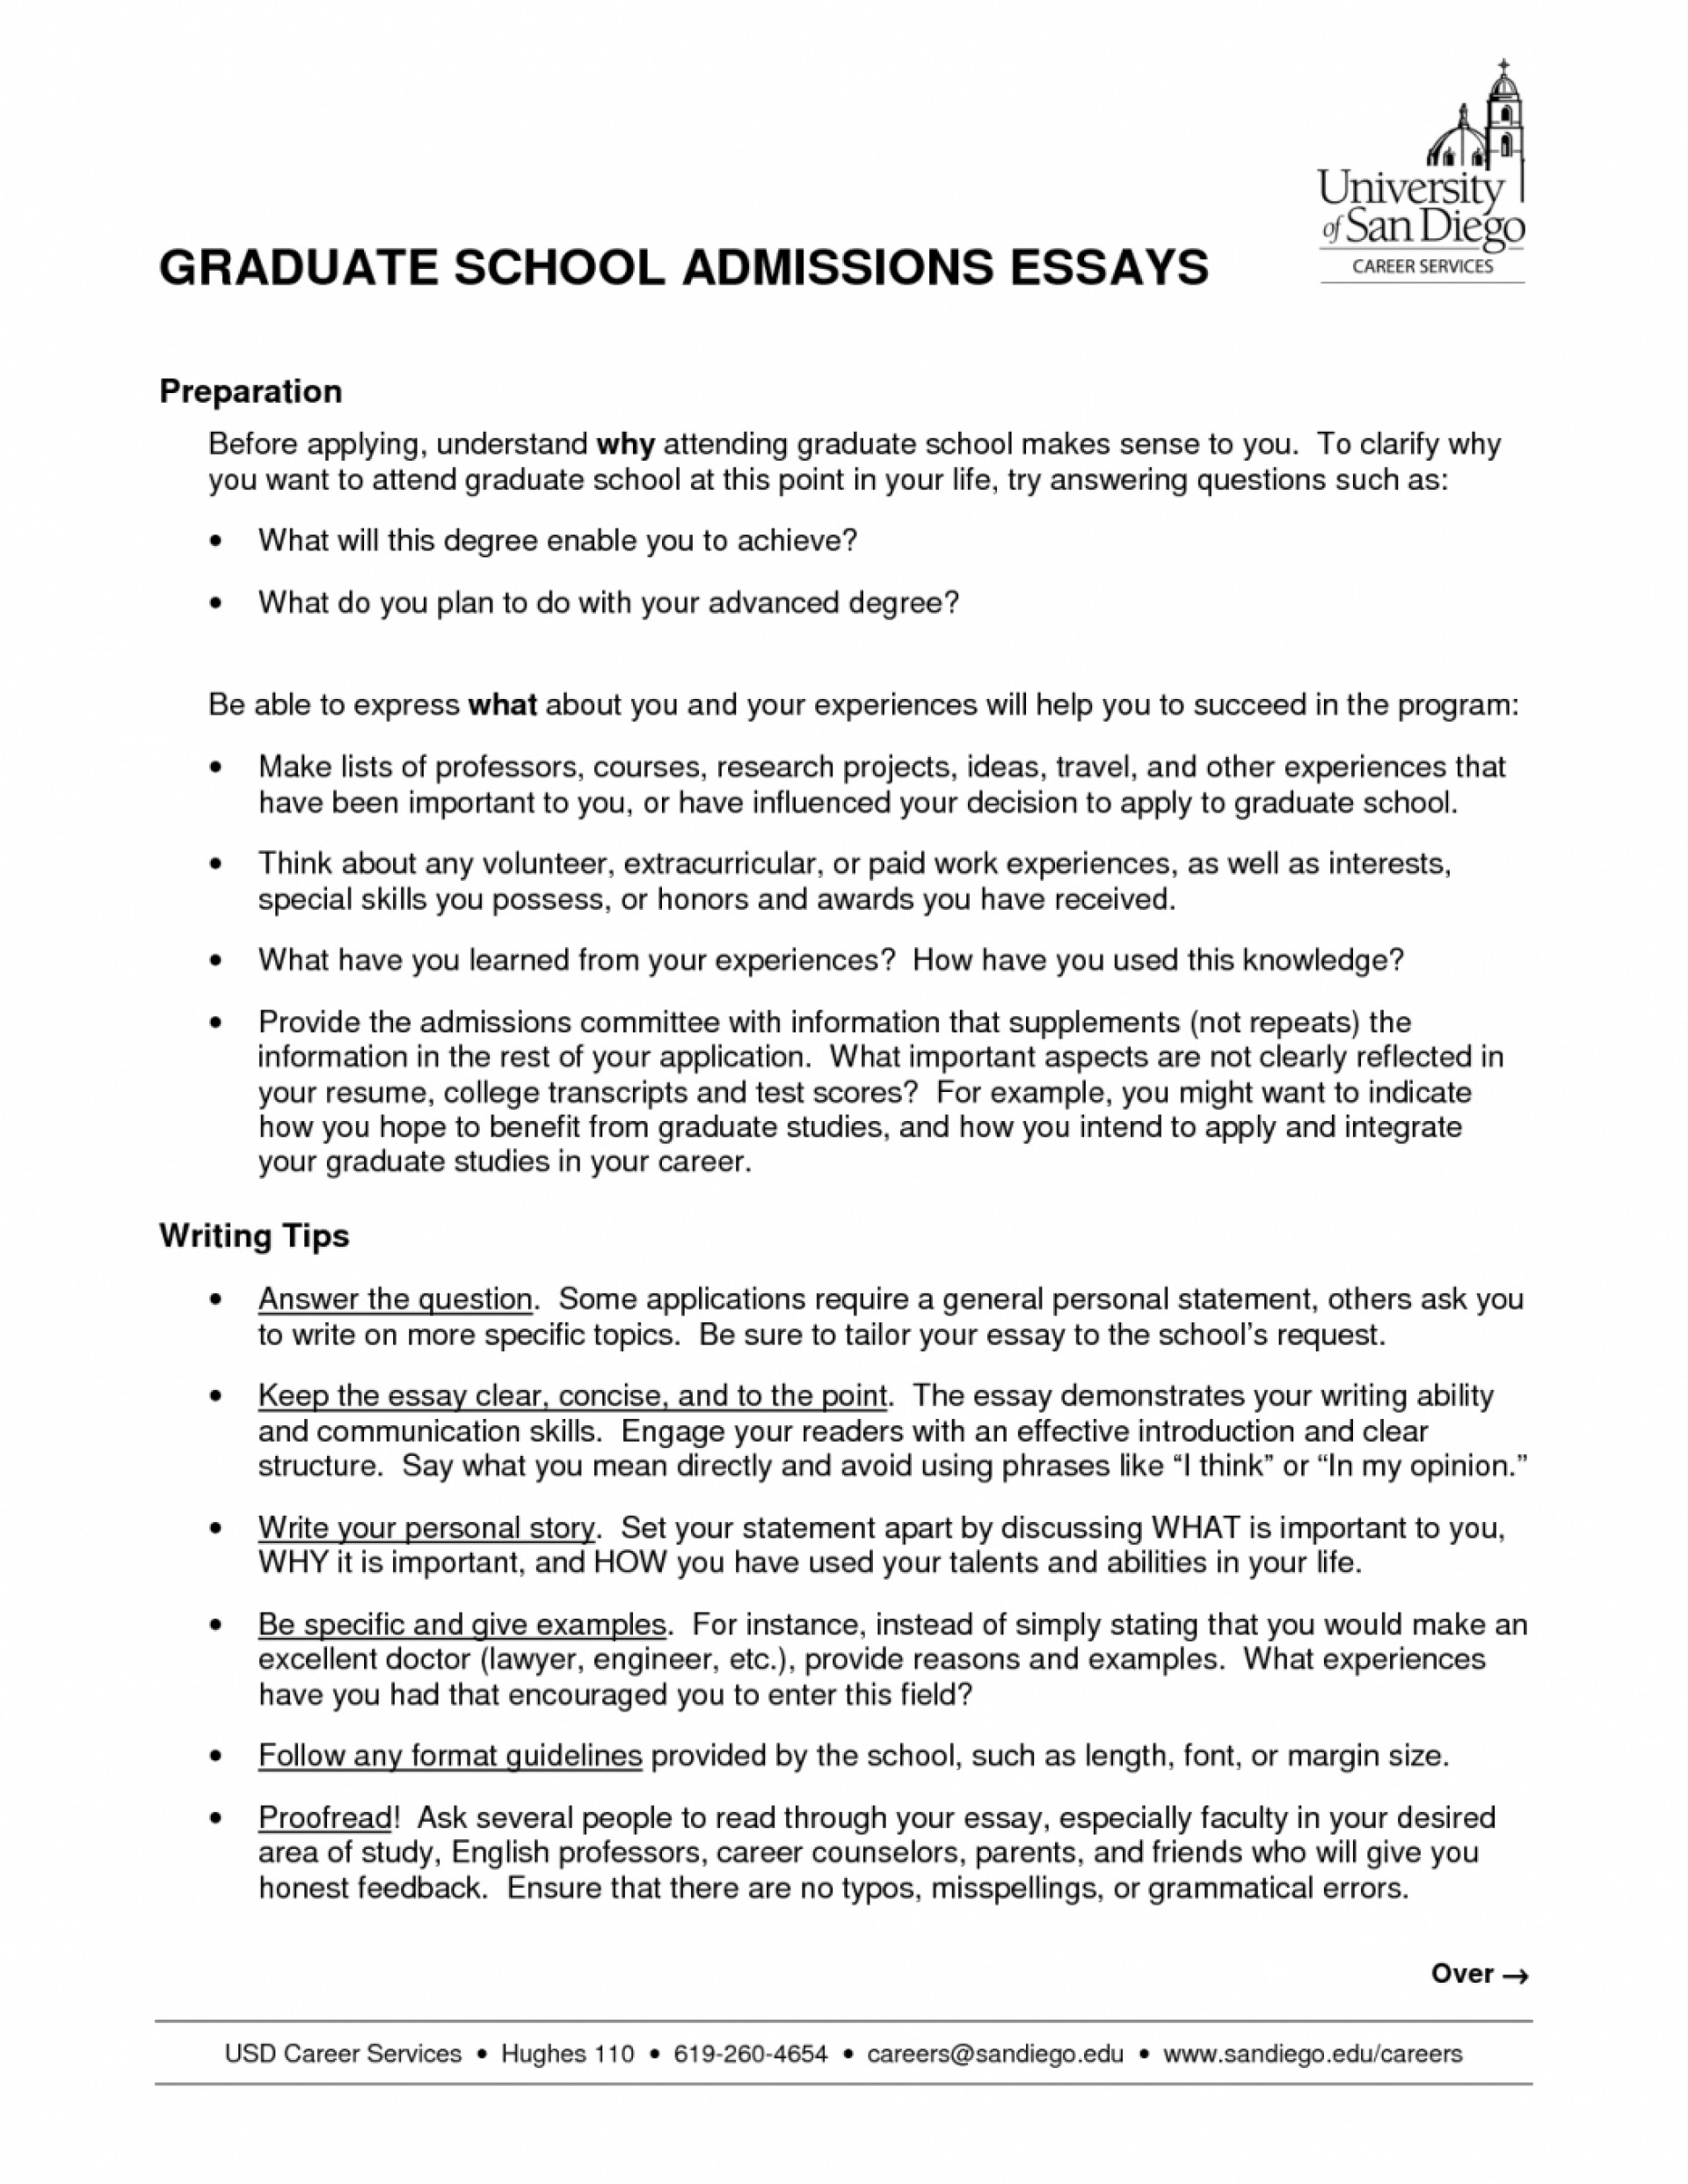 017 Essay Example Uw Application Professional Letter Writing For Hire Masters Sample Questions Madison La Crosse Question Milwaukee Incredible Examples Transfer 1920